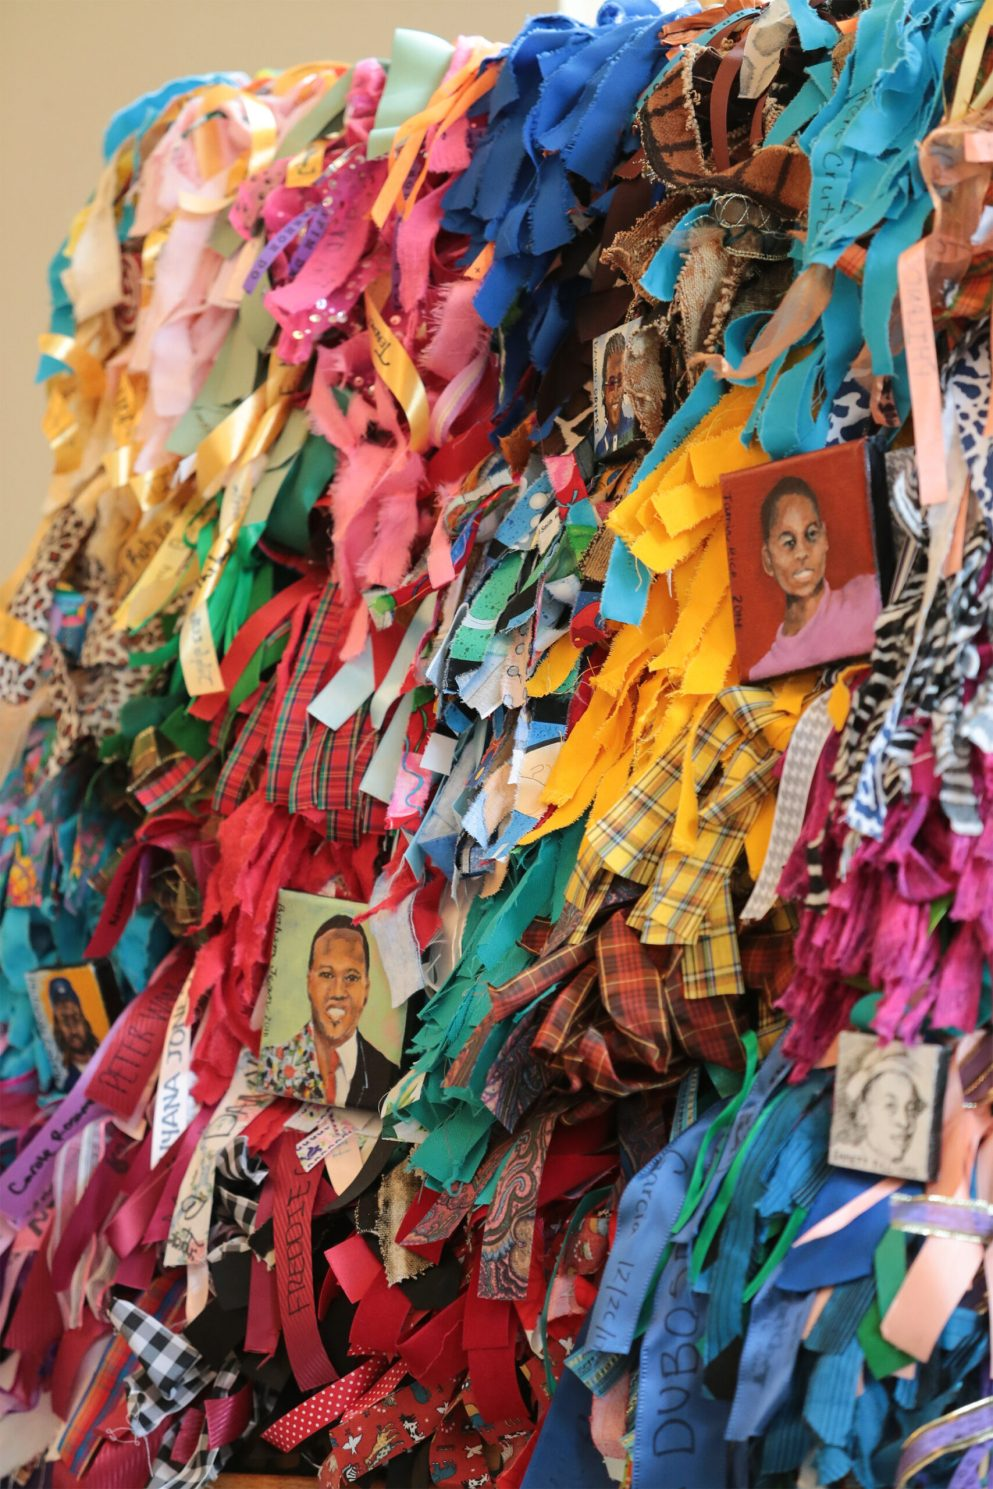 Ribbons tied on a Healing Wall